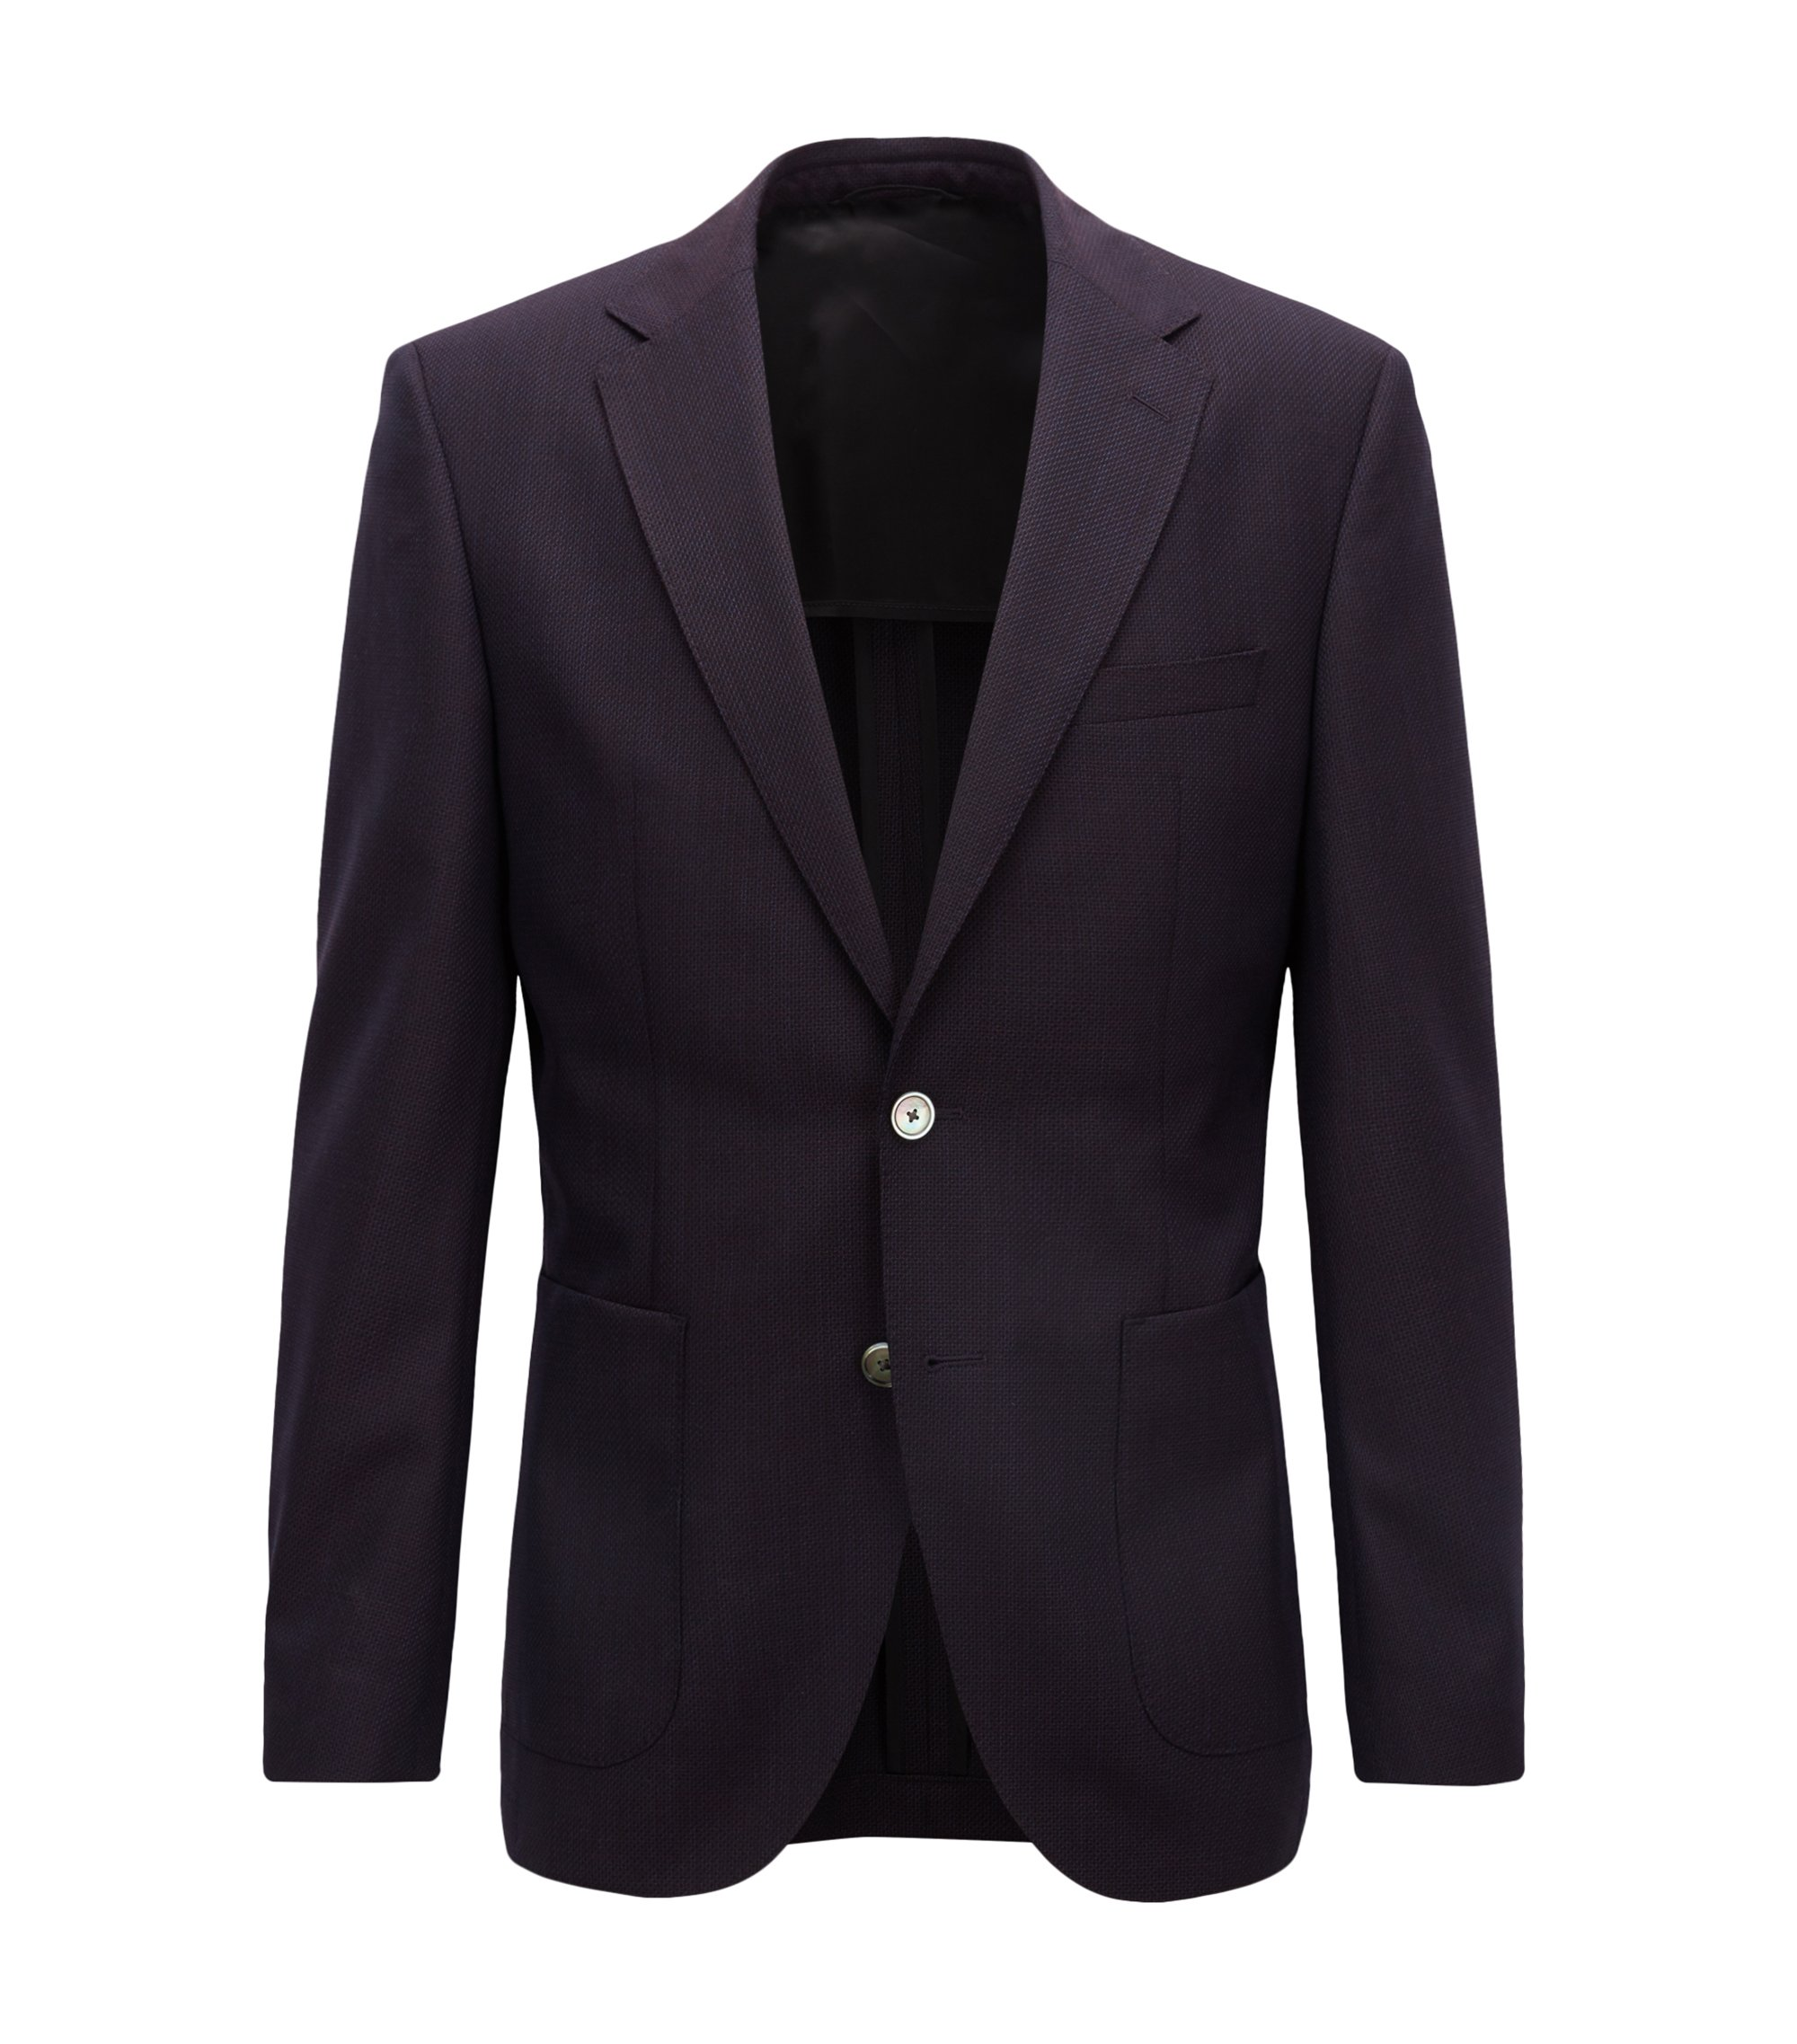 Blazer regular fit en lana virgen estampada, Rojo oscuro